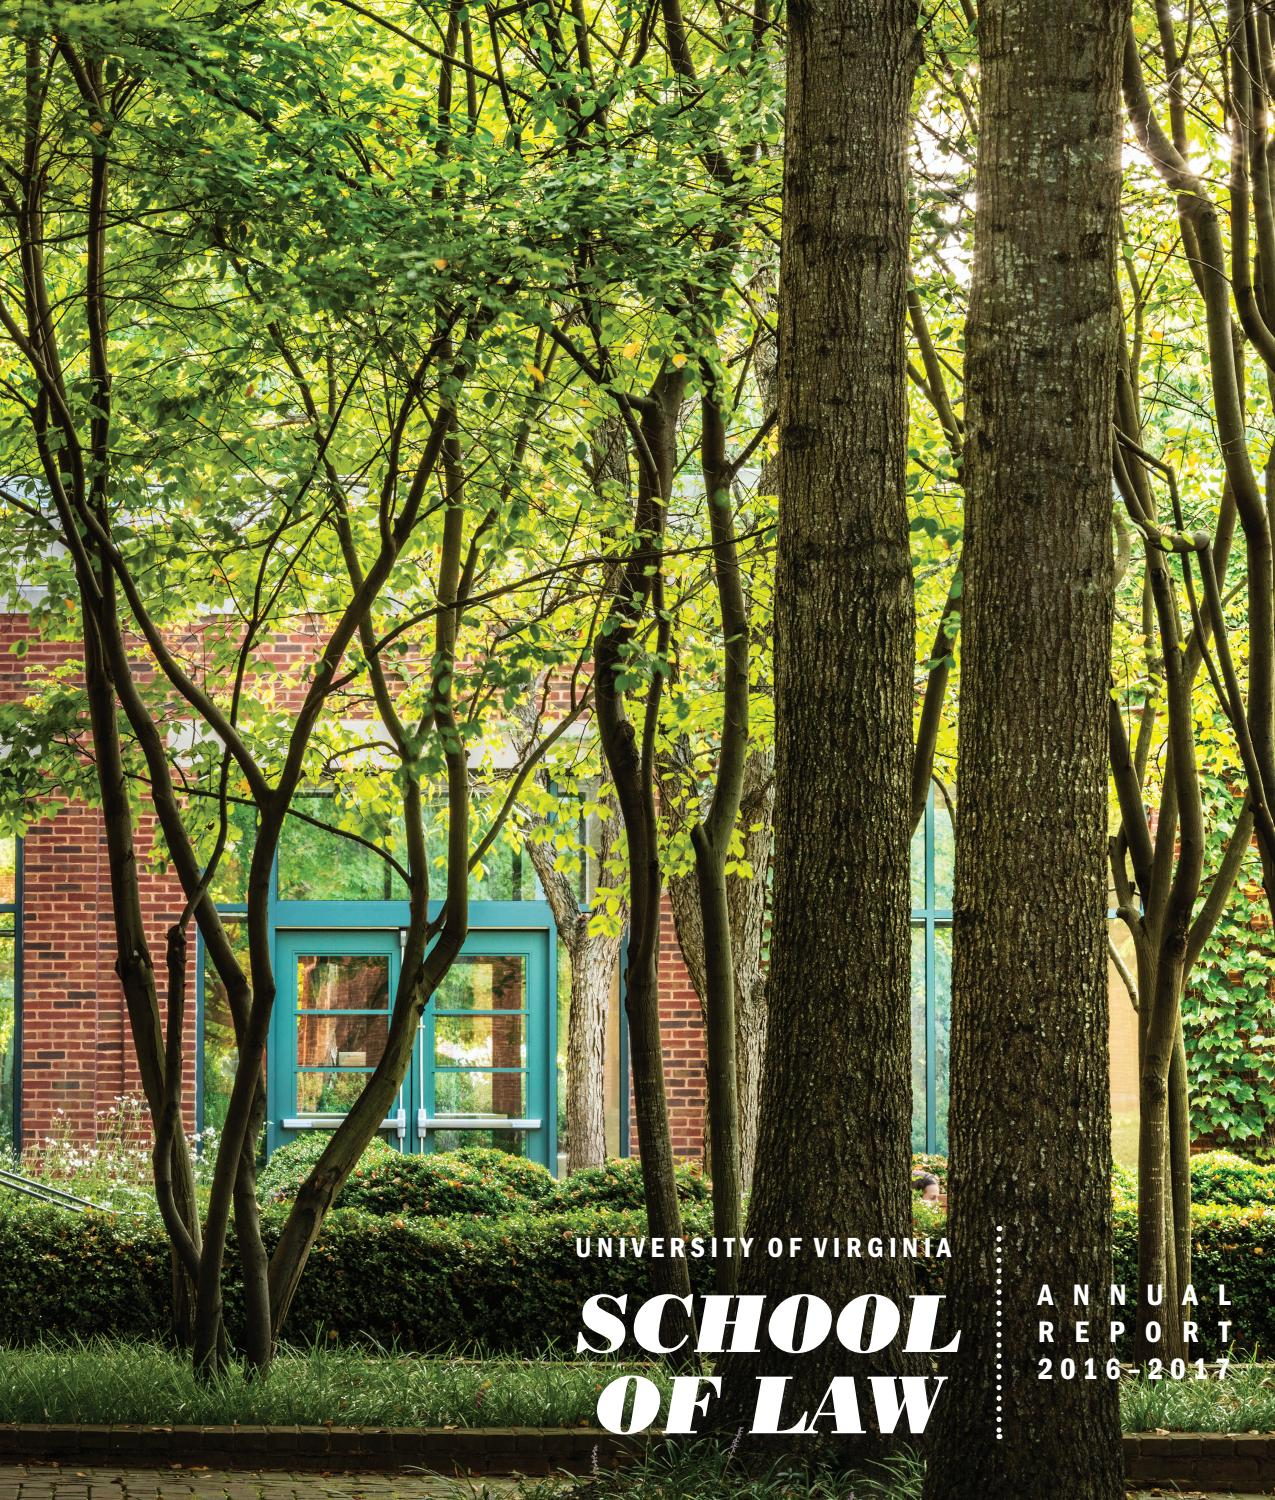 UVA Law Annual Report 2016-2017 by University of Virginia